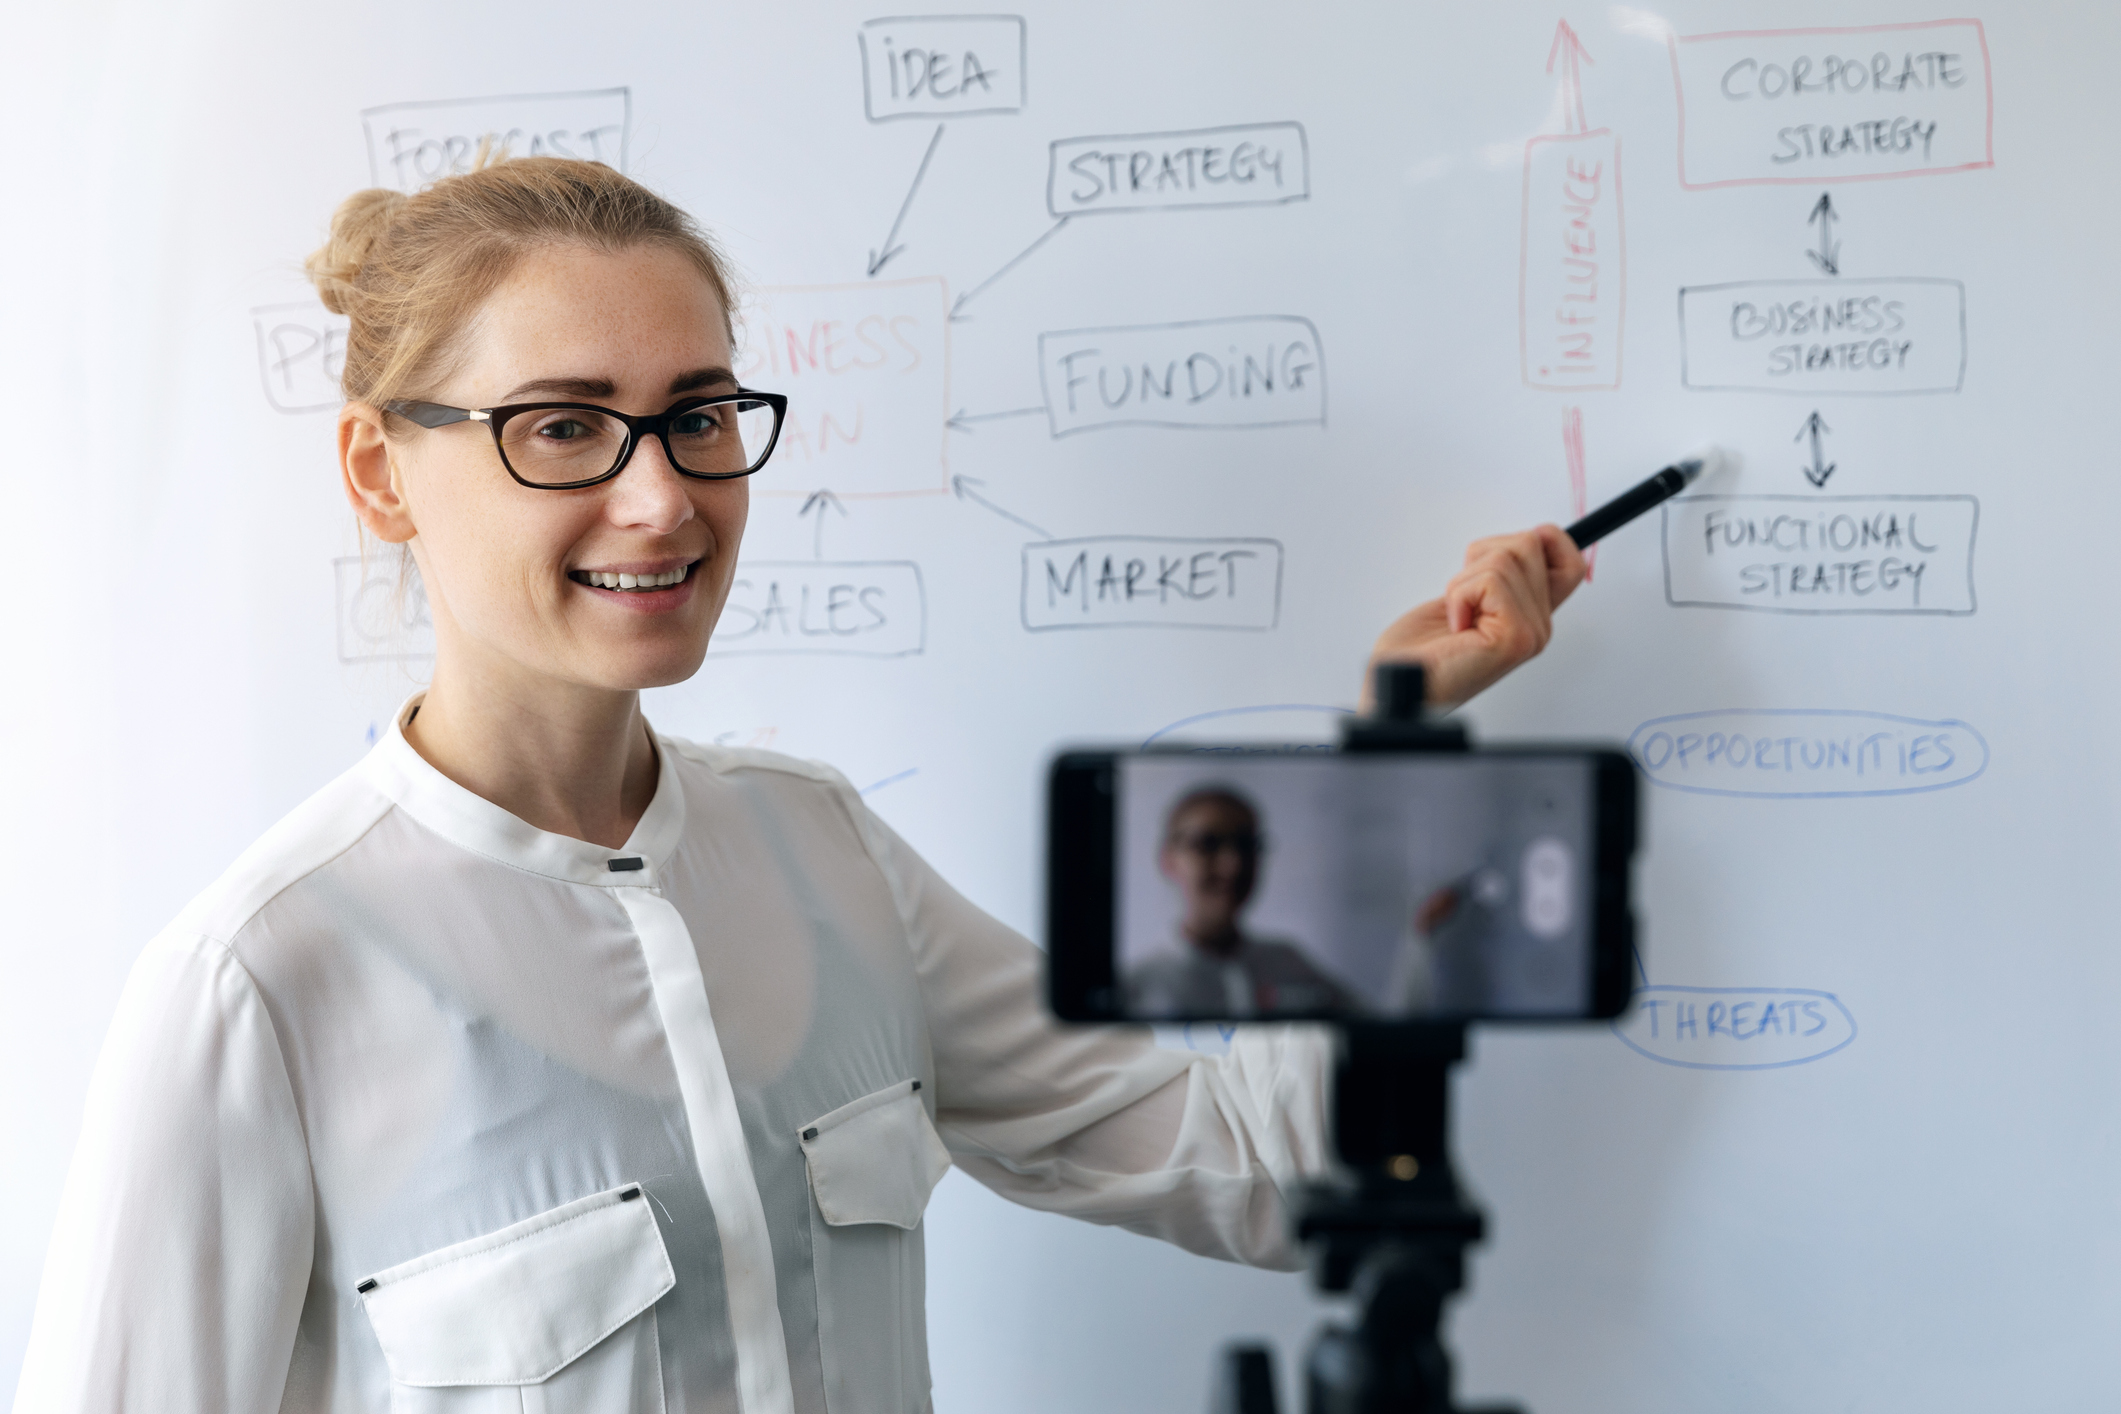 woman pointing to whiteboard while on camera for leveraging whiteboards concept